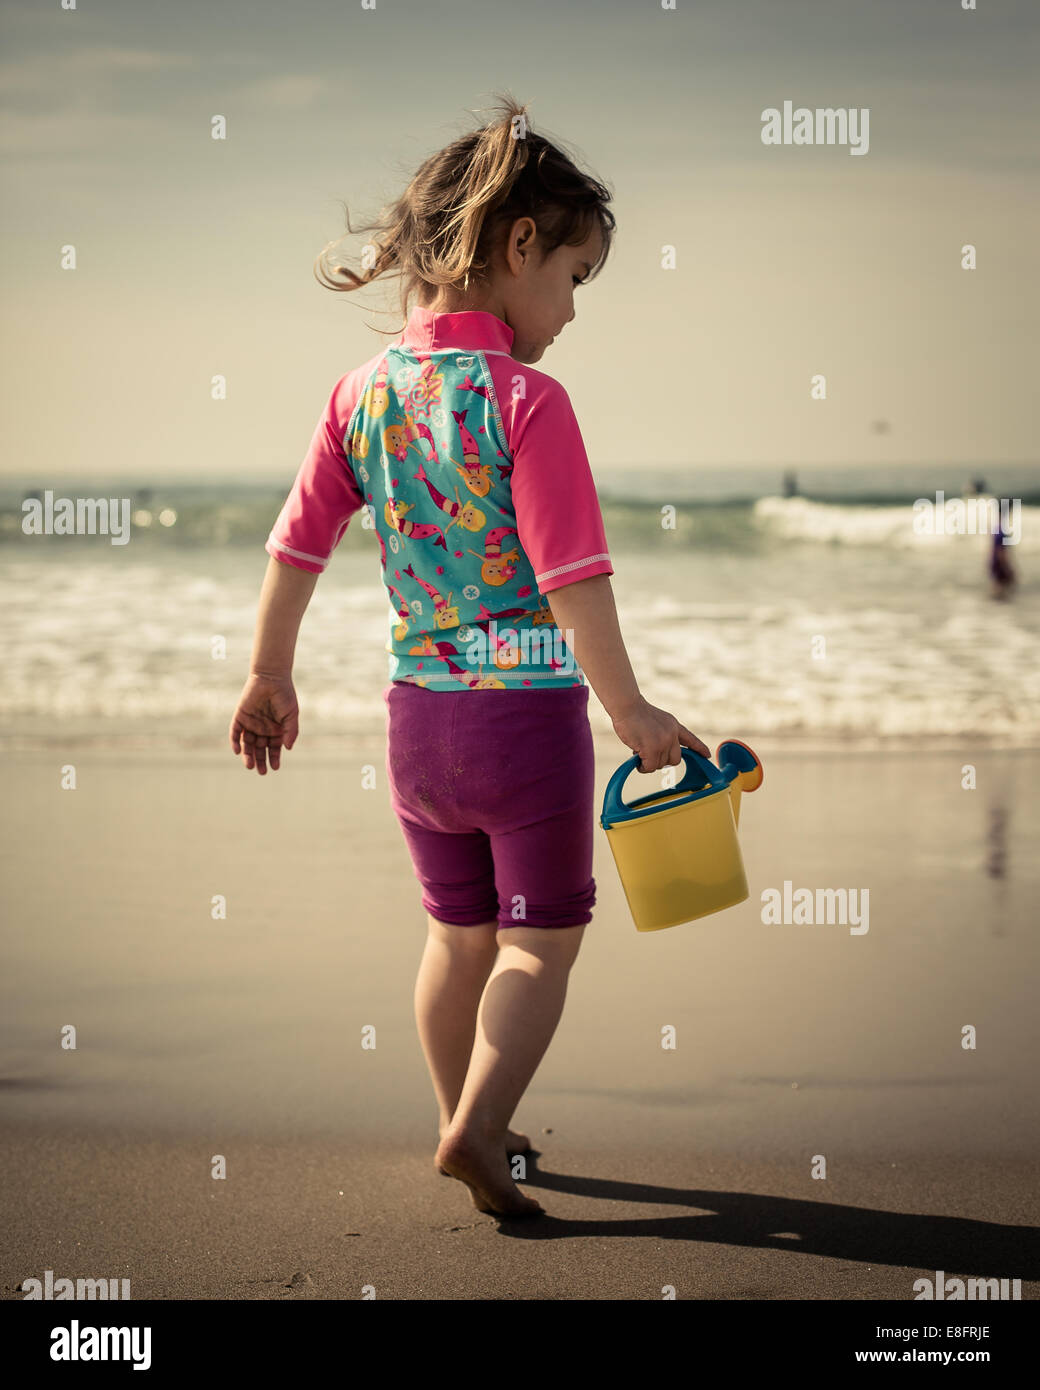 View of girl (18-23 months) walking along beach - Stock Image